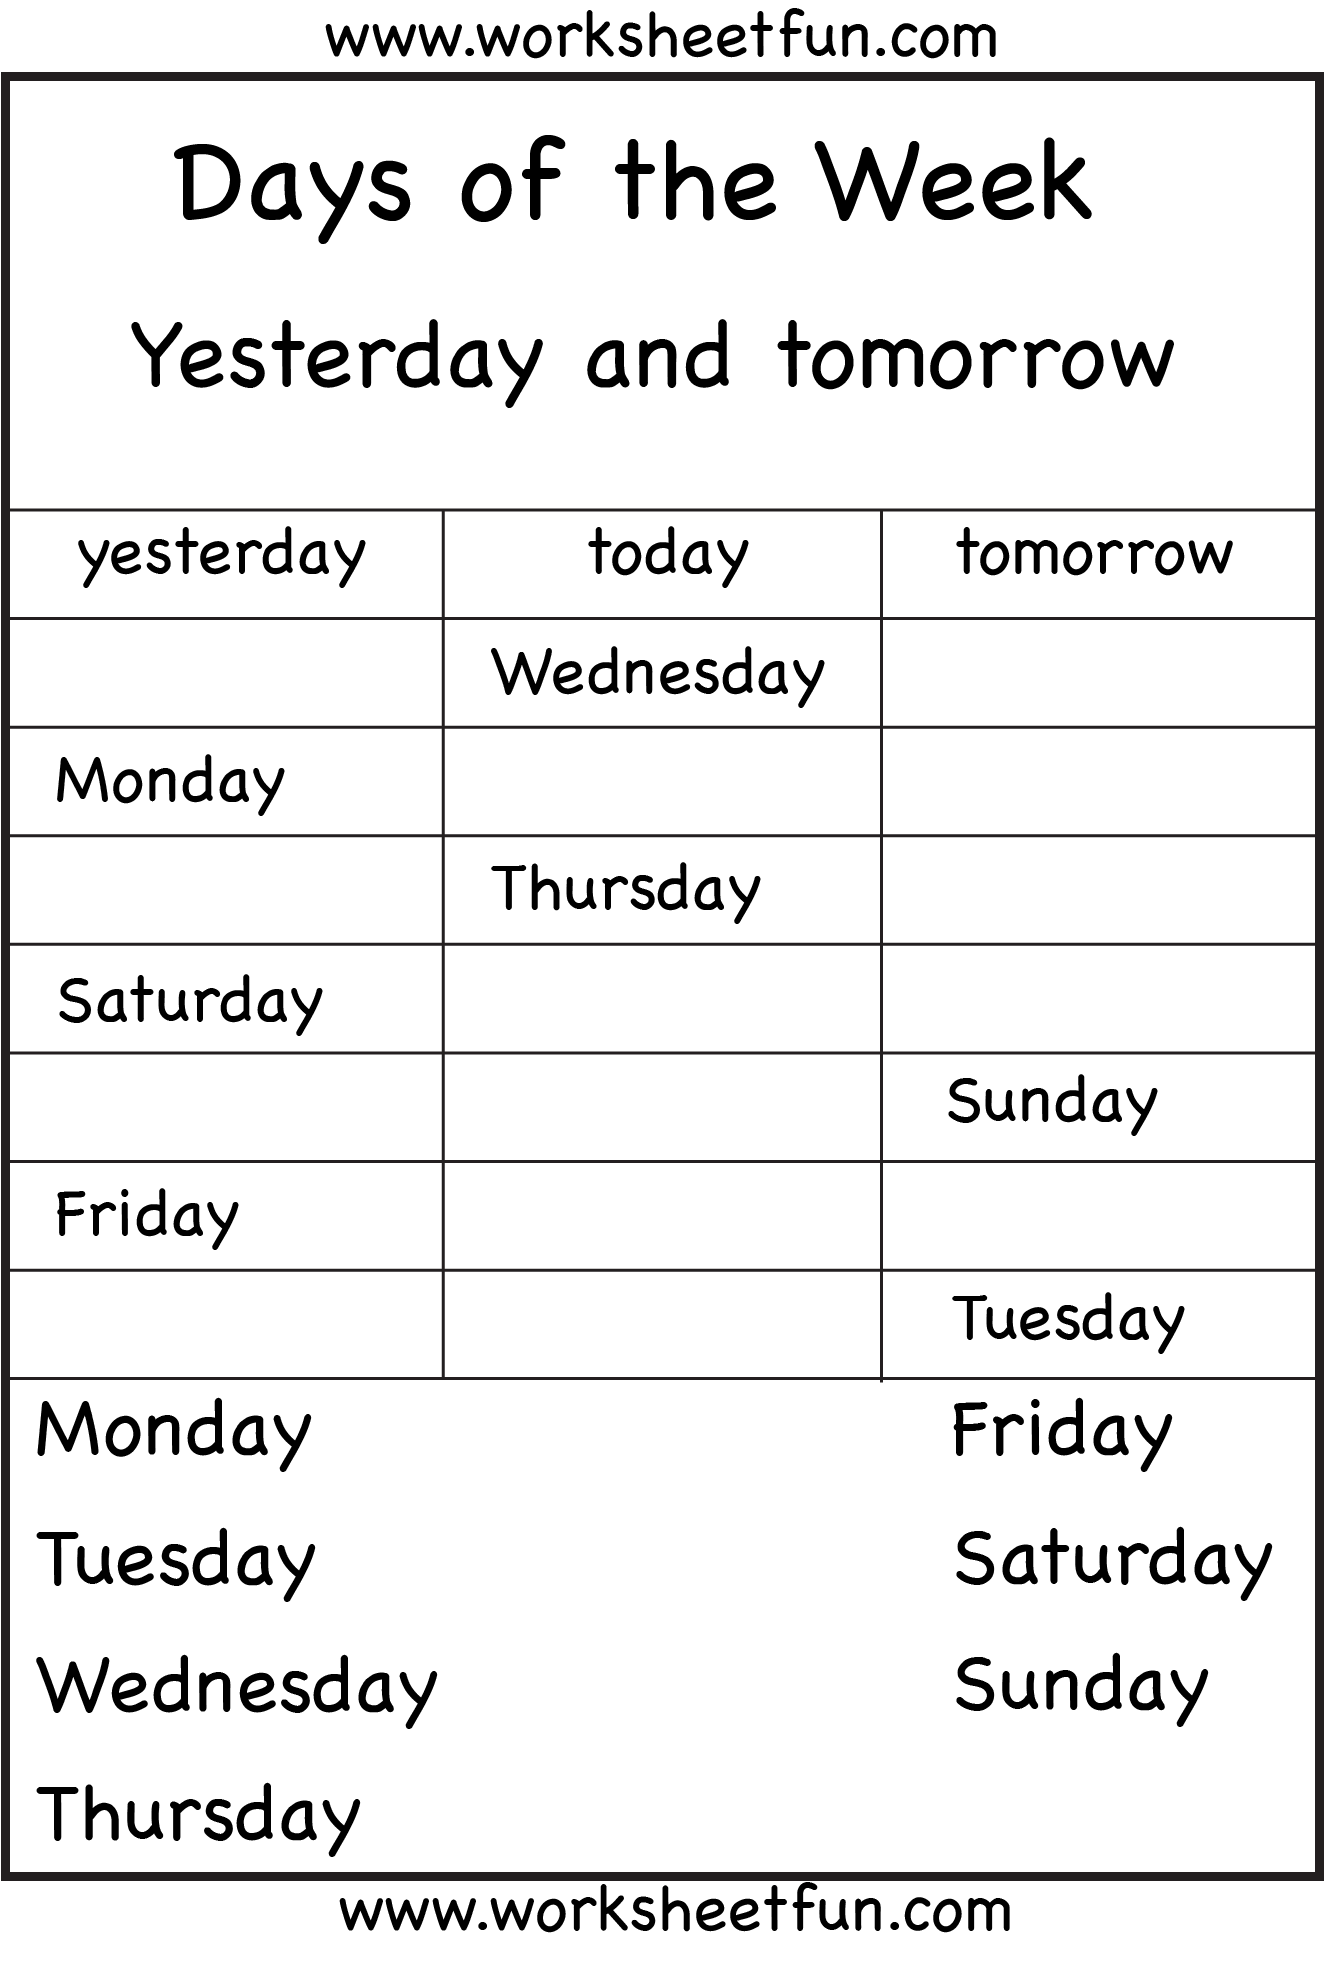 Days Of The Week Yesterday And Tomorrow 6 Worksheets